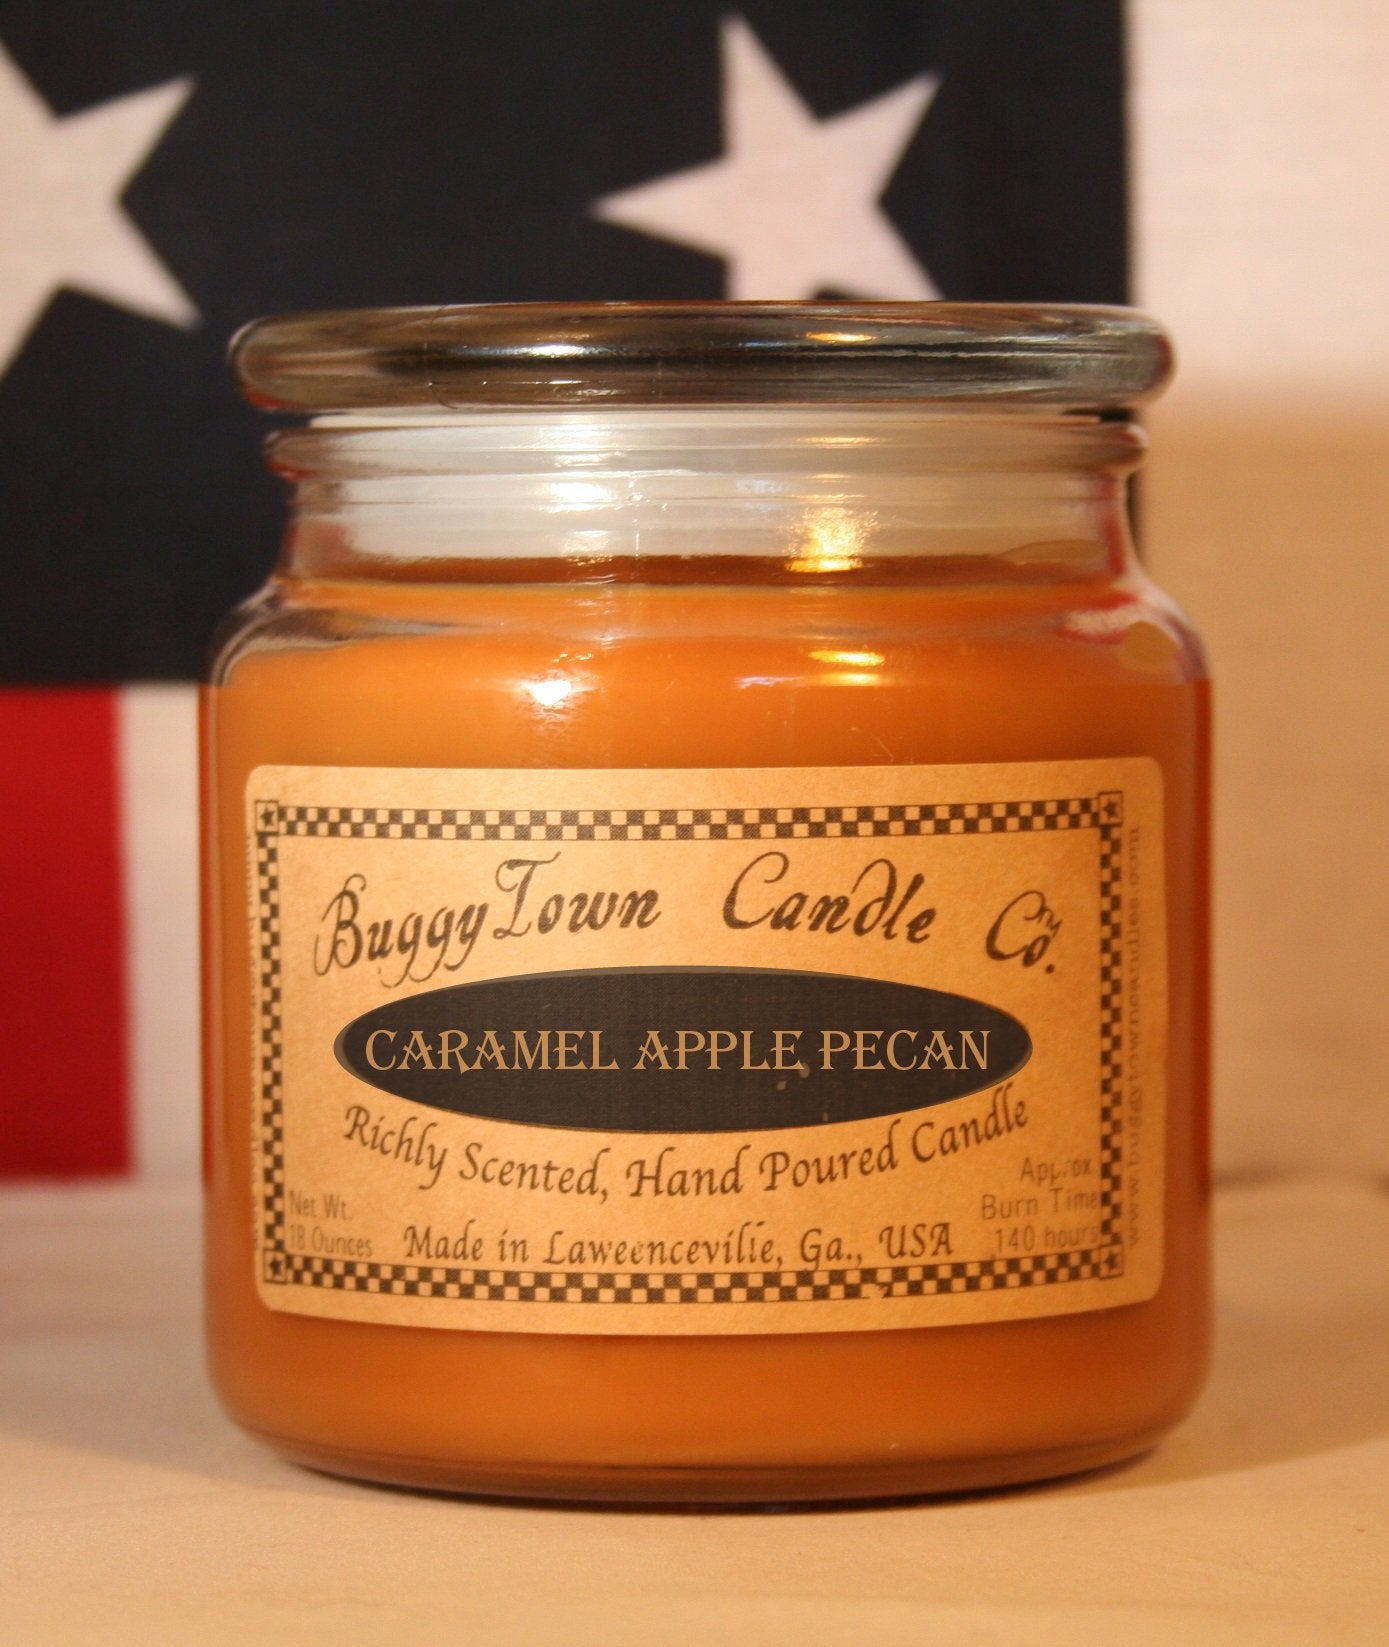 Caramel Apple Pecan Candles